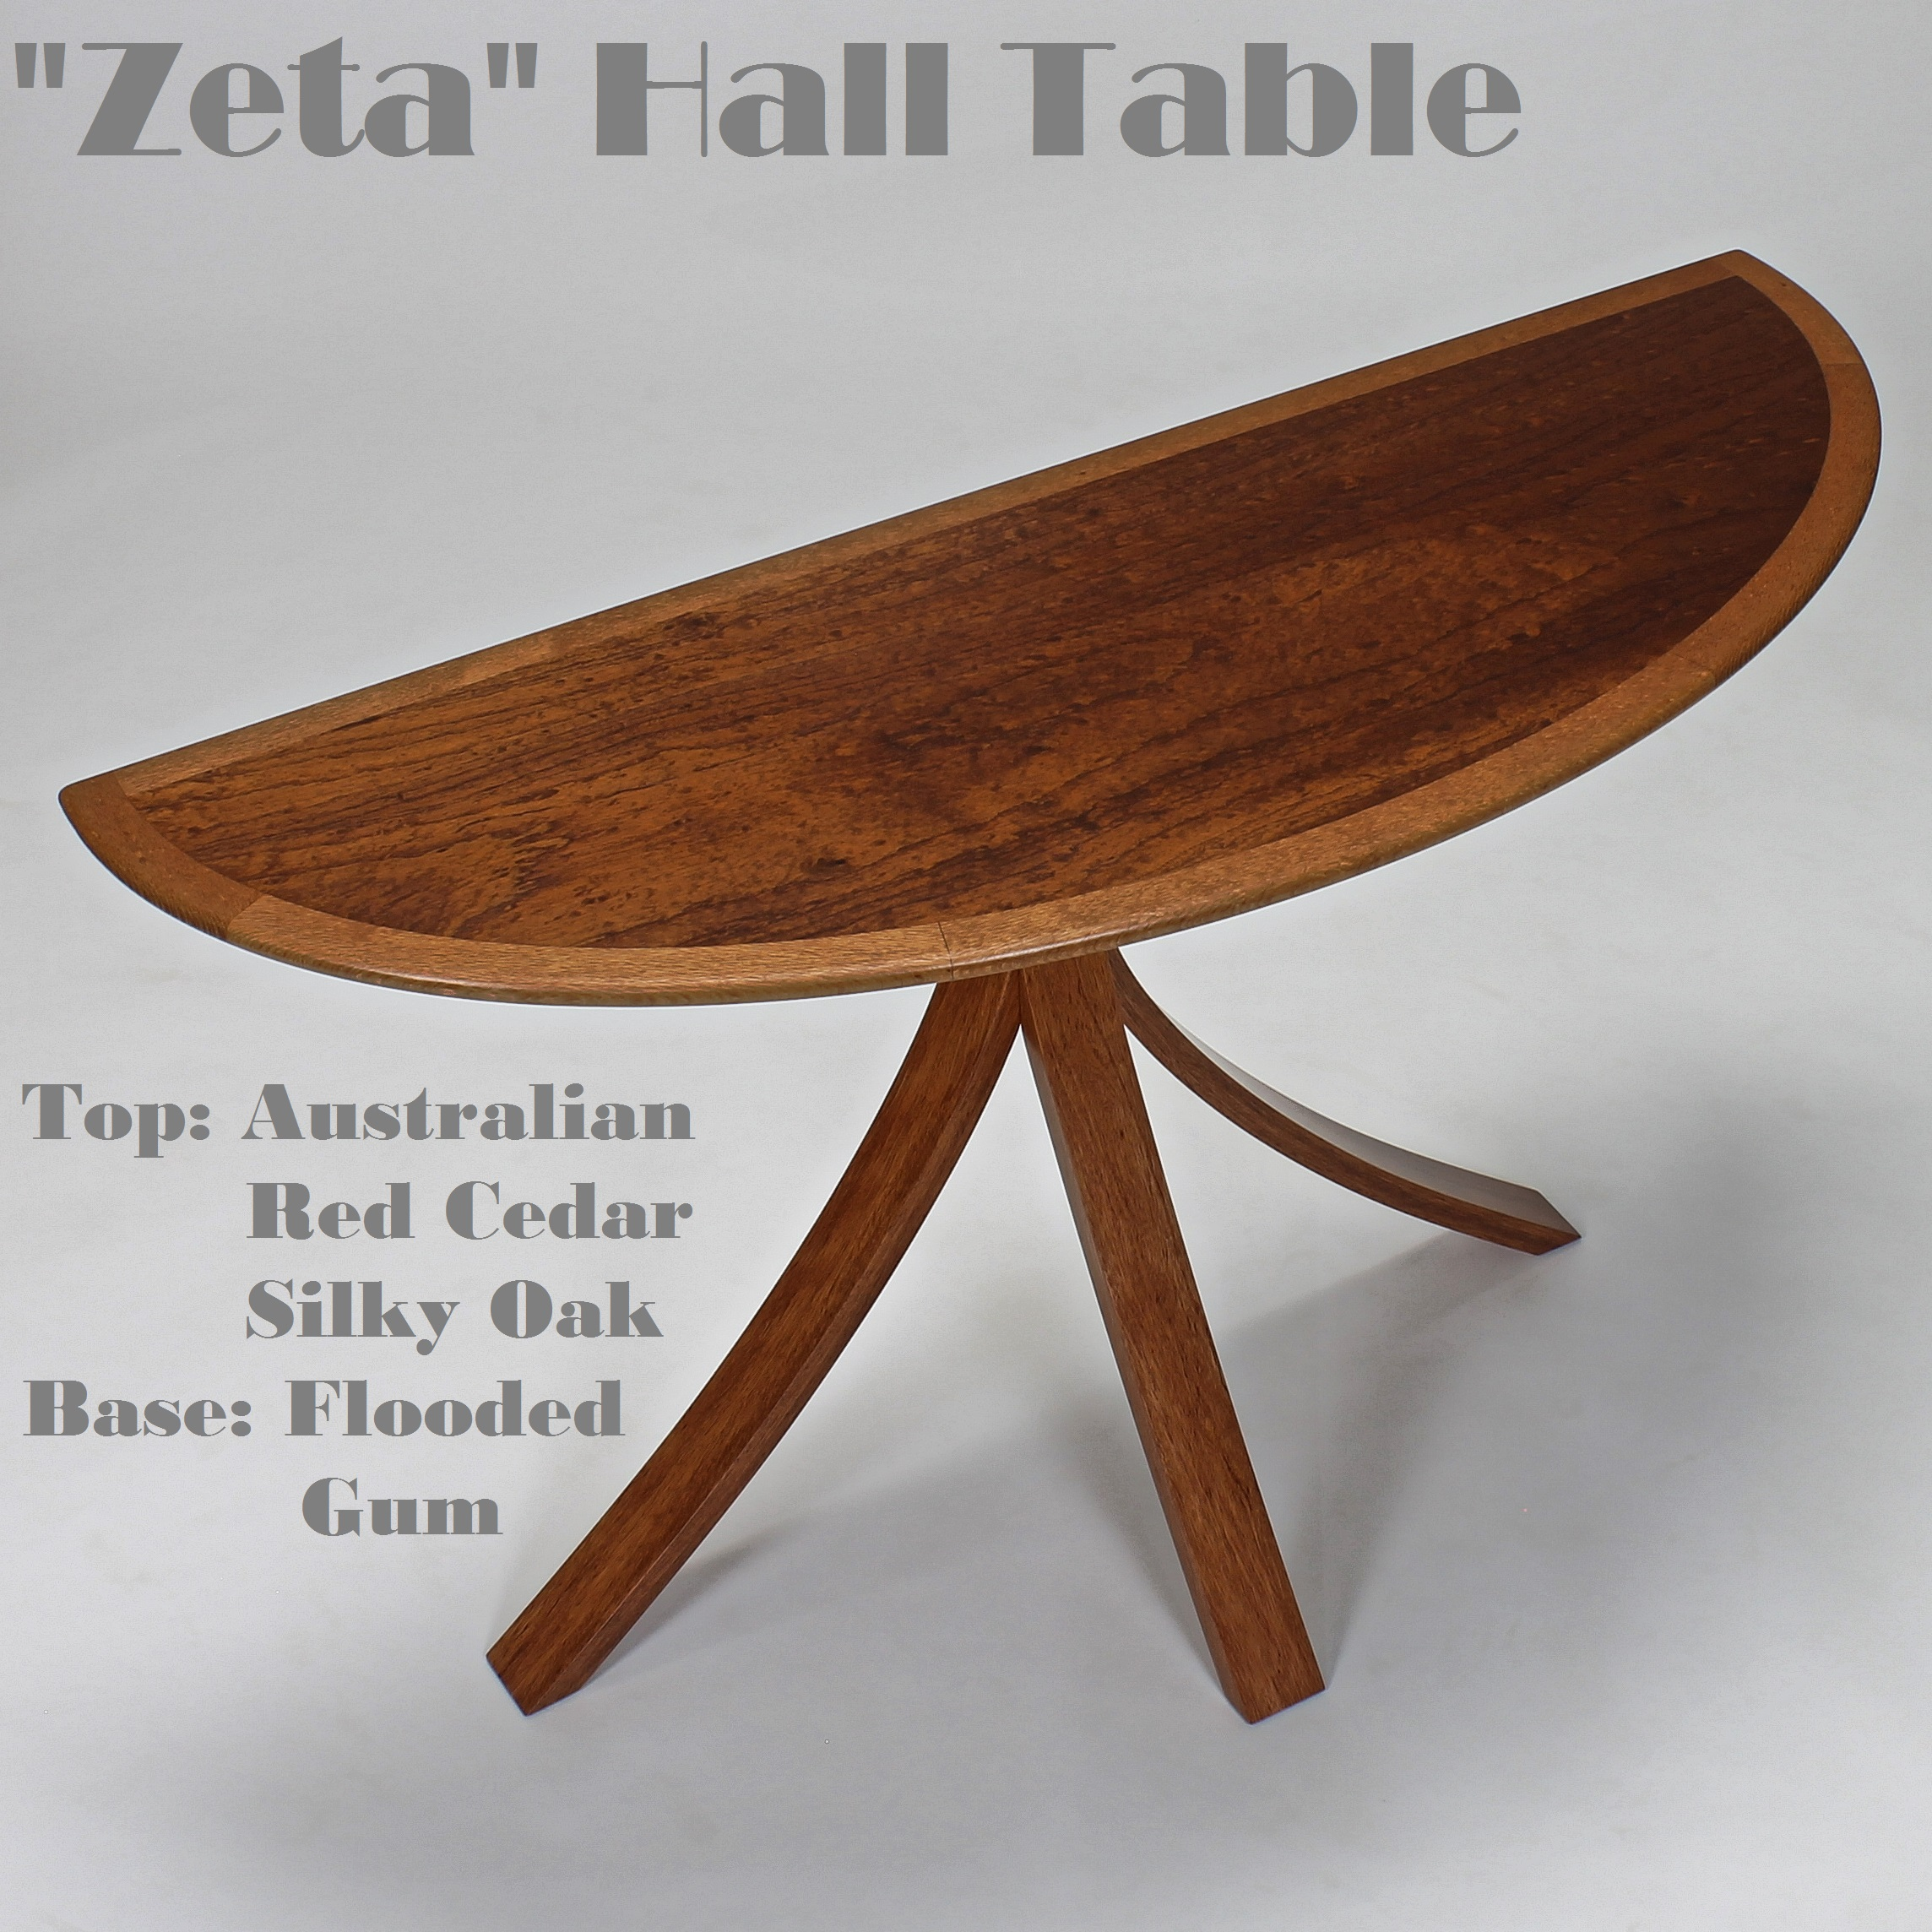 Zeta Hall Table Website 1